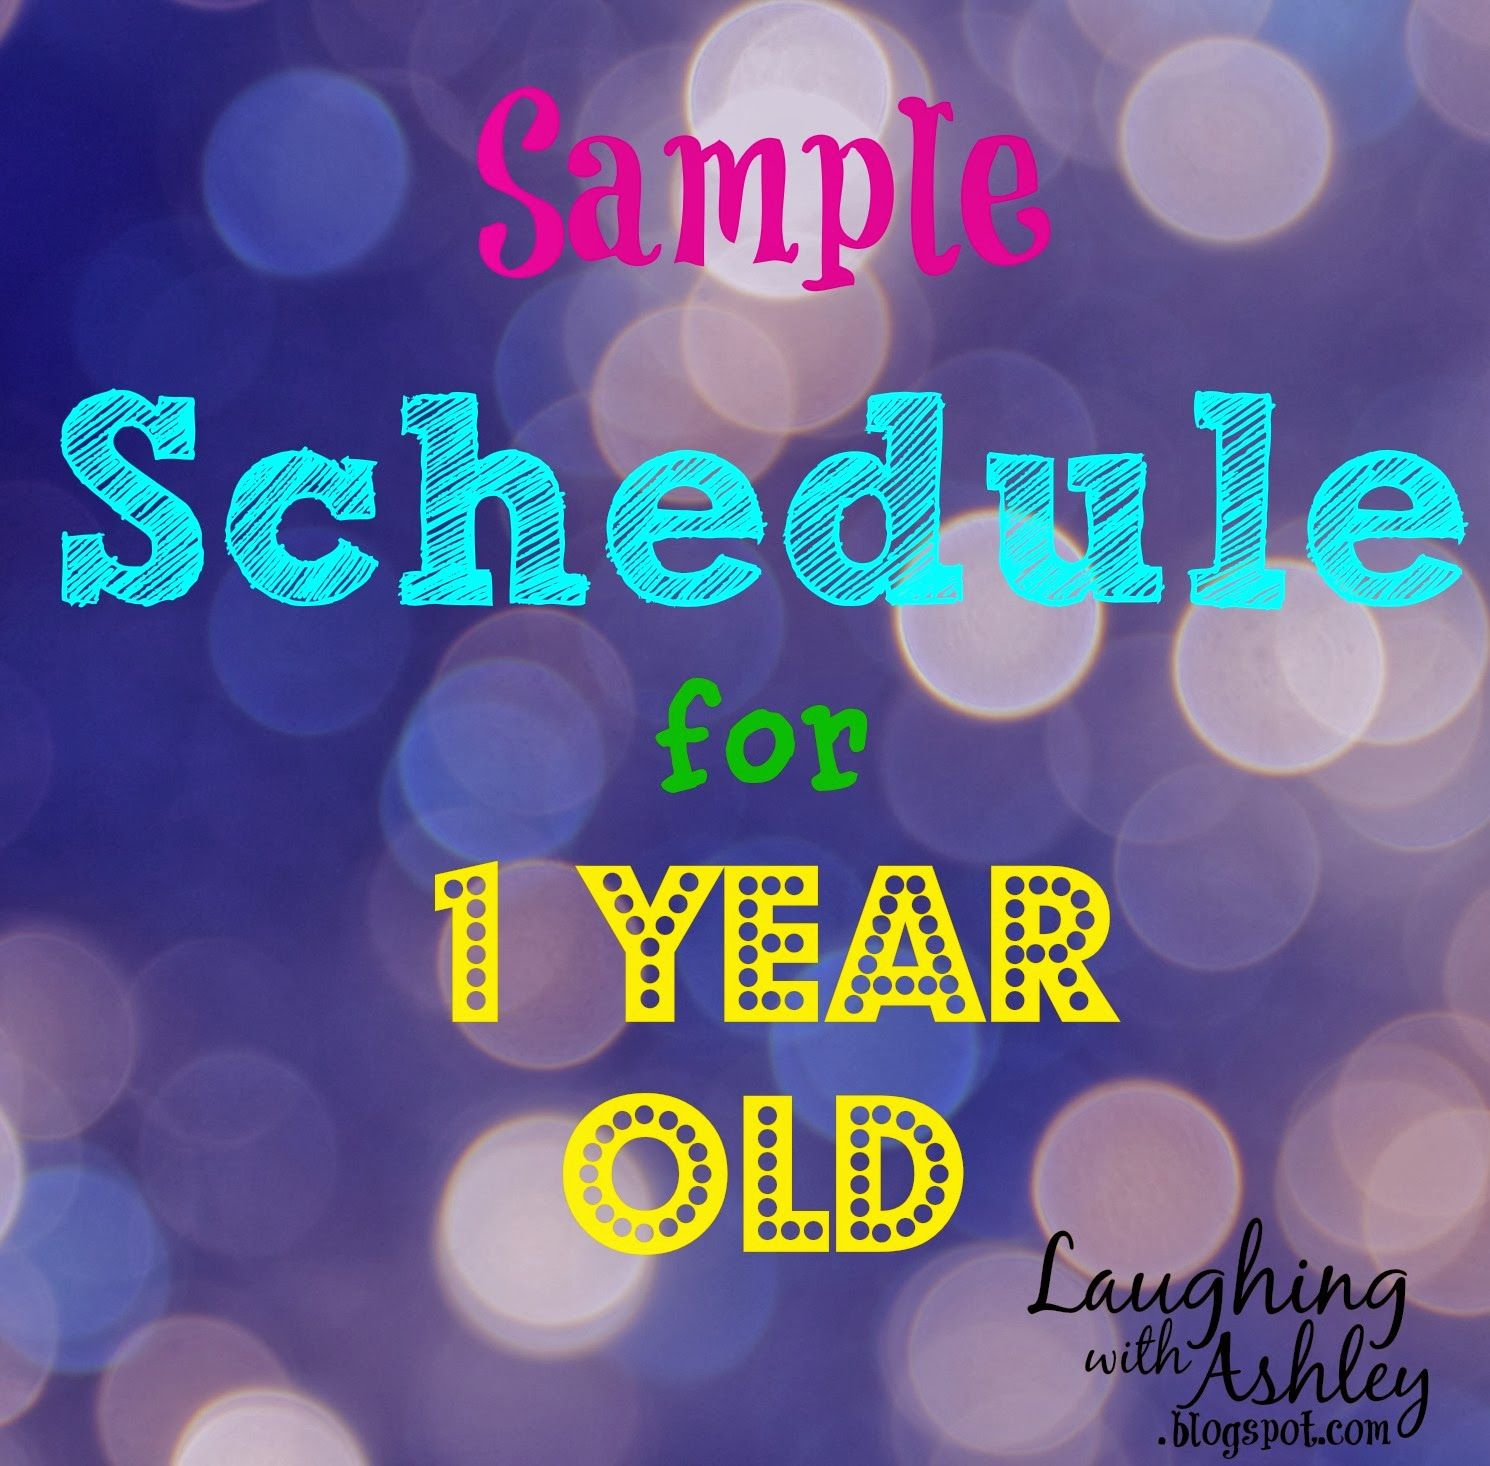 Laughing with Ashley : Sample Schedule for 1 Year Old | All Stuff ...